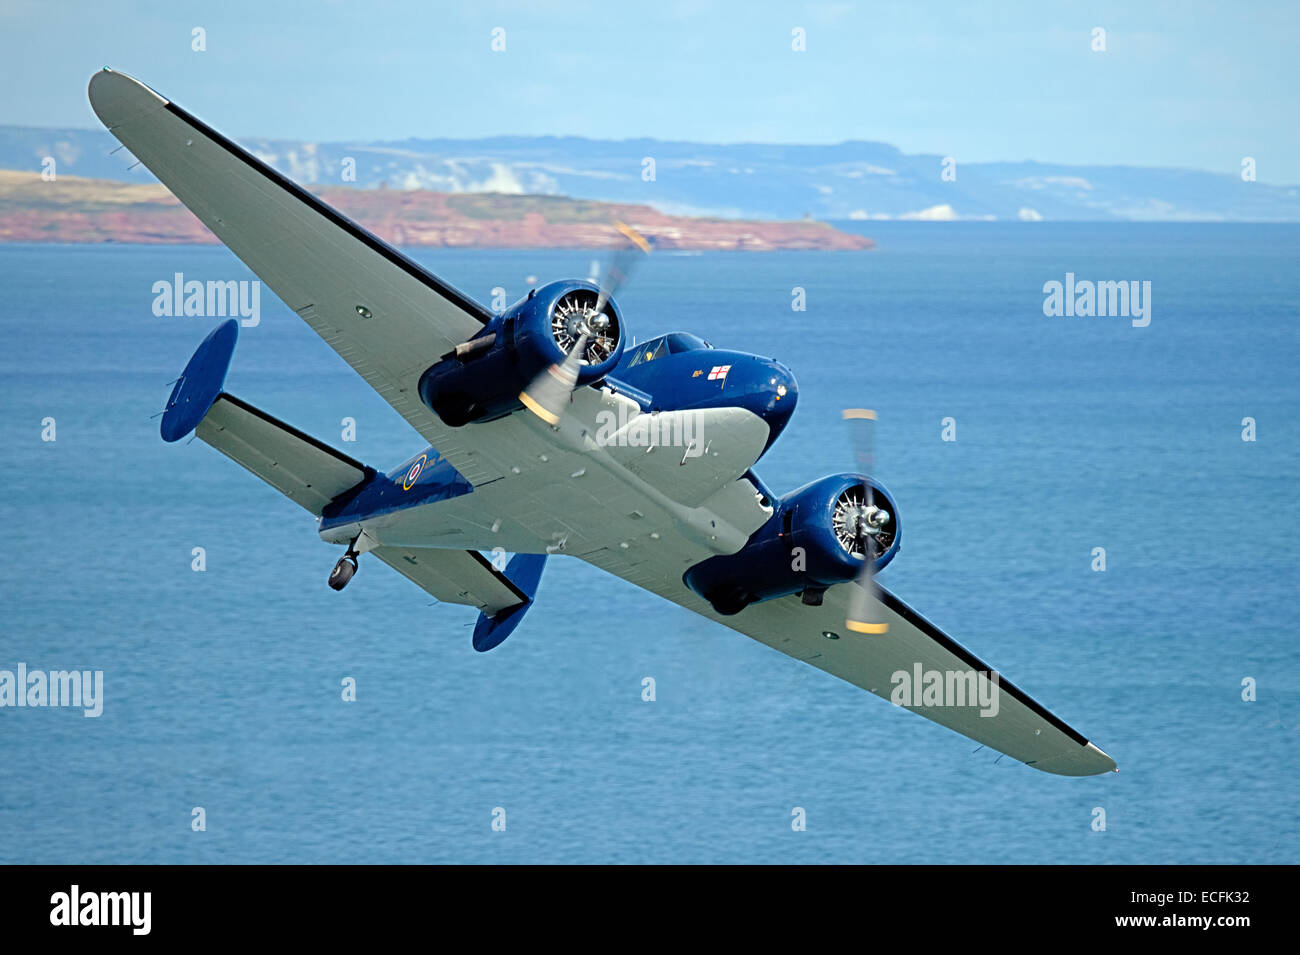 Beechcraft Model 18 approaching from the sea at the Dawlish Airshow - Stock Image